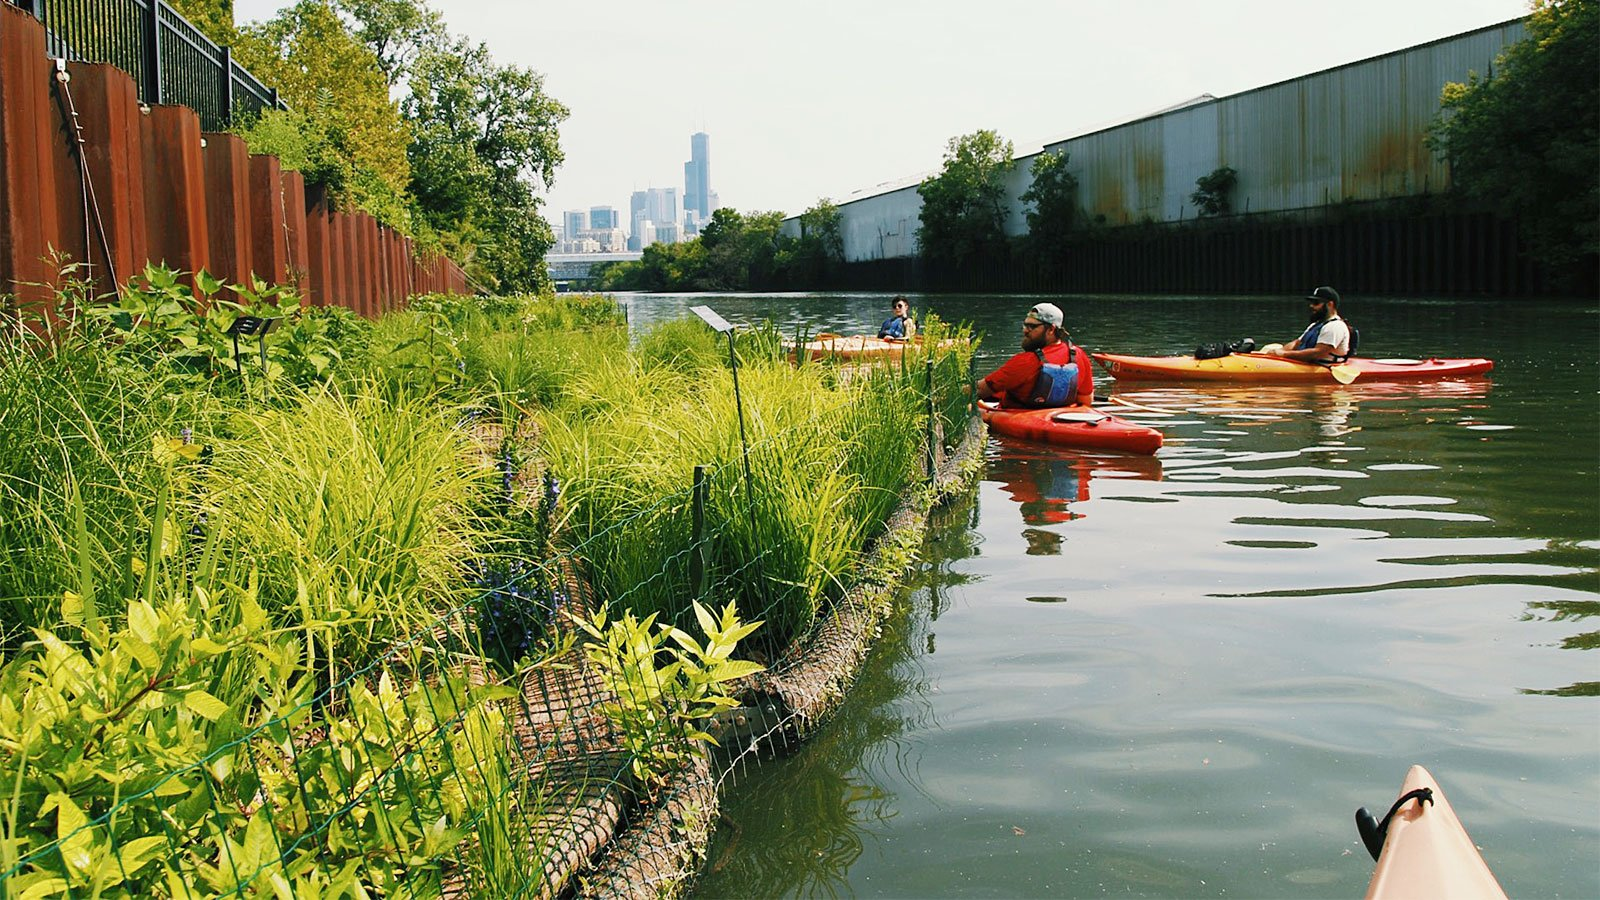 Volunteers and employees of Urban Rivers kayak near the organization's floating gardens on the North Branch of the Chicago River